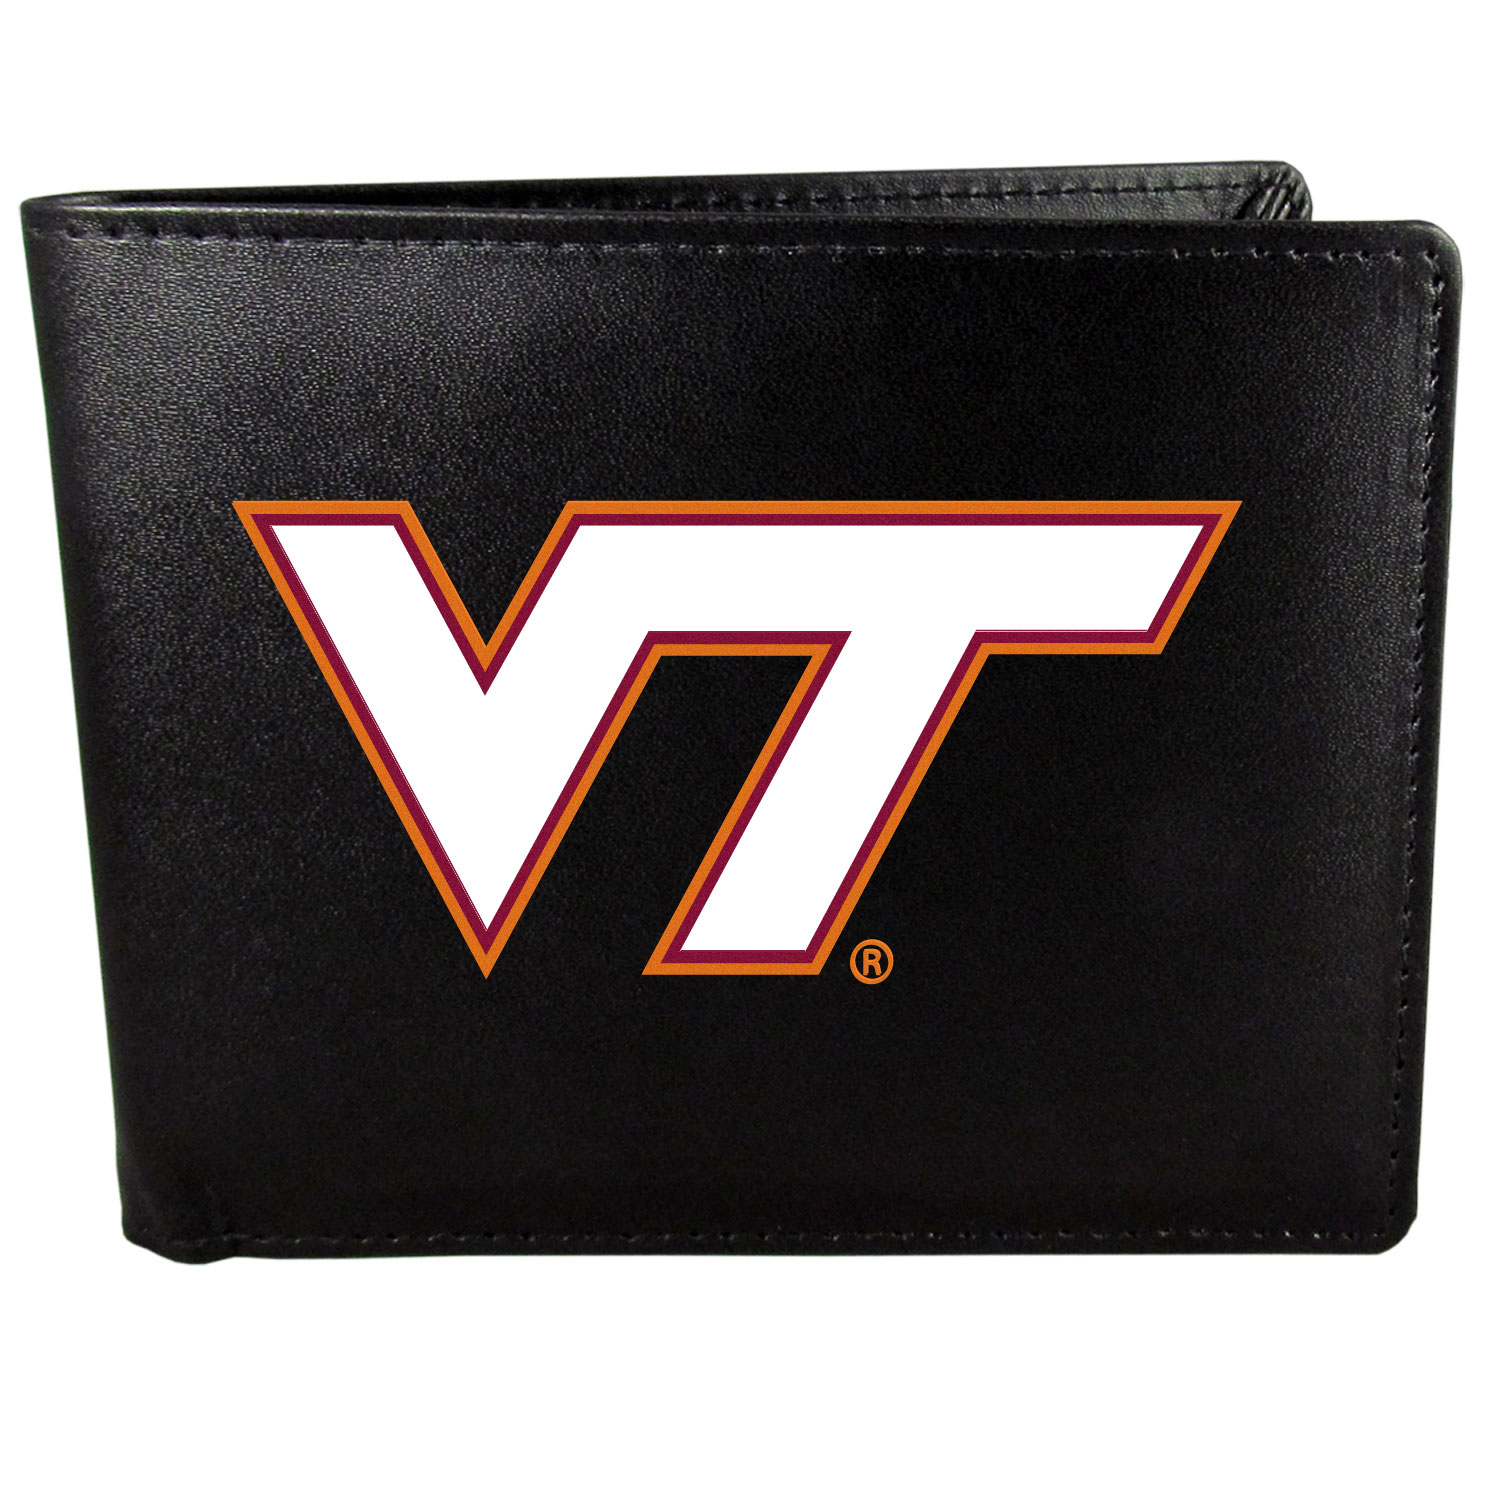 Virginia Tech Hokies Leather Bi-fold Wallet, Large Logo - Our classic fine leather bi-fold wallet is meticulously crafted with genuine leather that will age beautifully so you will have a quality wallet for years to come. The wallet opens to a large, billfold pocket and numerous credit card slots and has a convenient windowed ID slot. The front of the wallet features an extra large Virginia Tech Hokies printed logo.